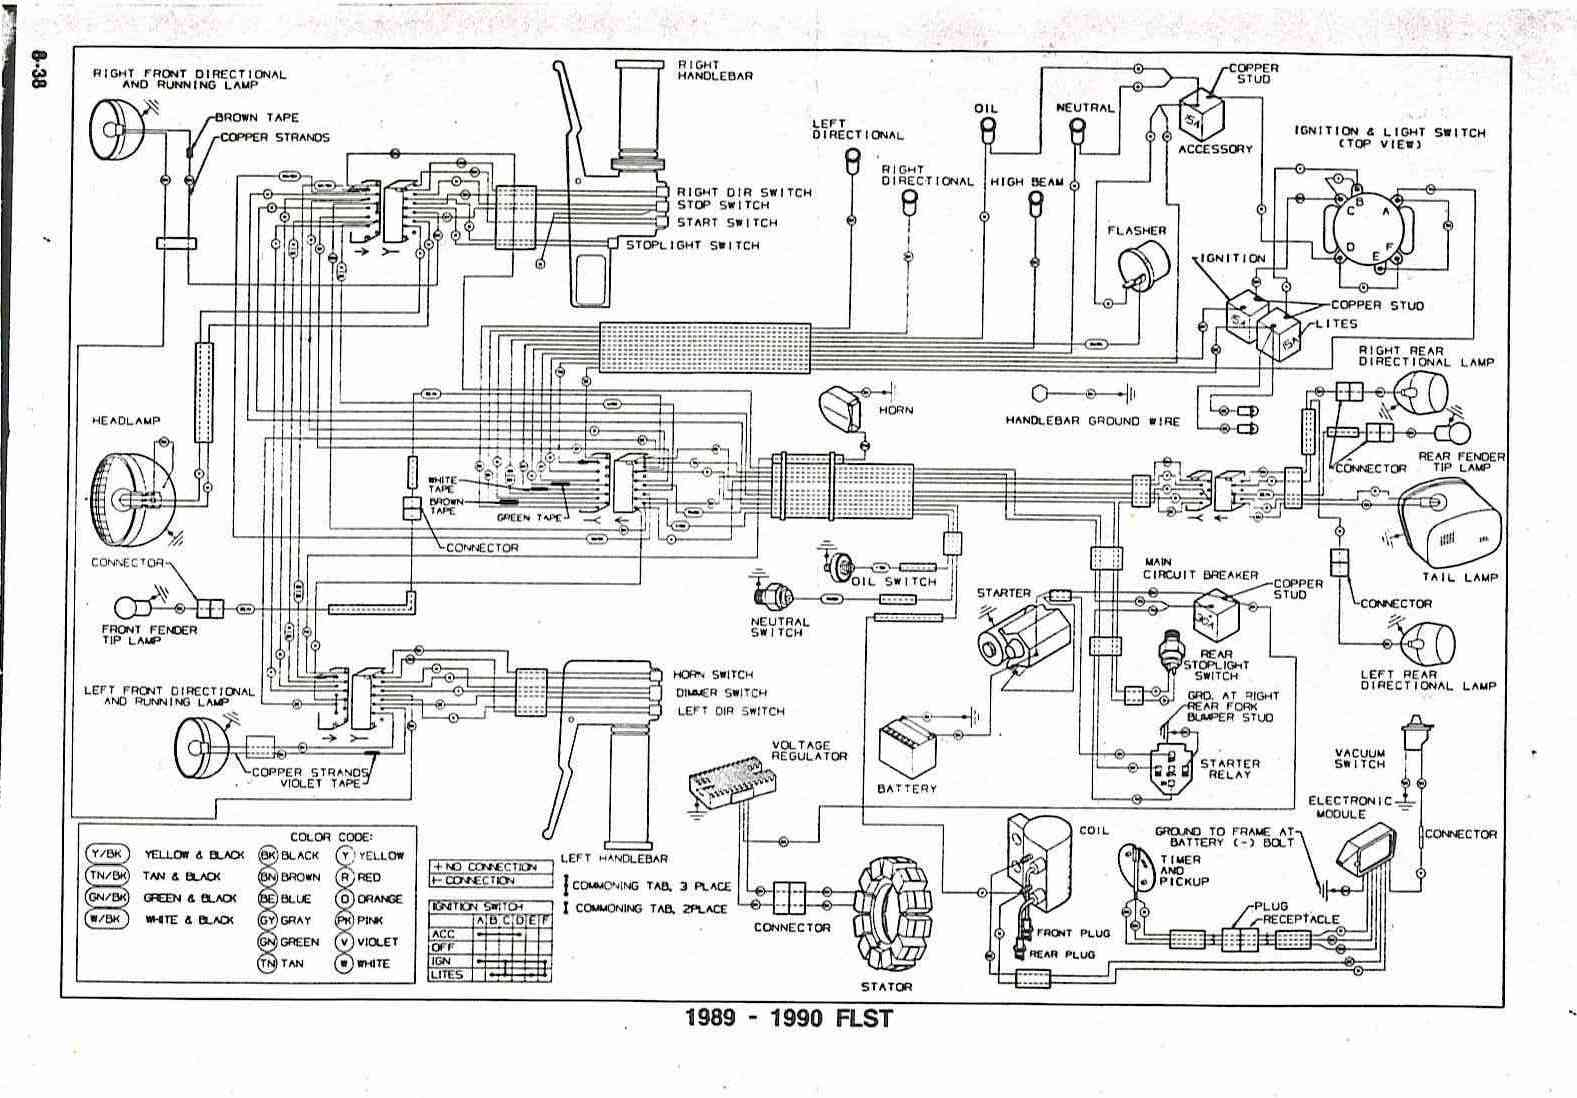 2000 harley wiring diagram wiring diagram pass 2000 Road King Electrical System 2000 fatboy wiring diagram everything wiring diagram 2000 harley davidson road king wiring diagram 2000 flstf